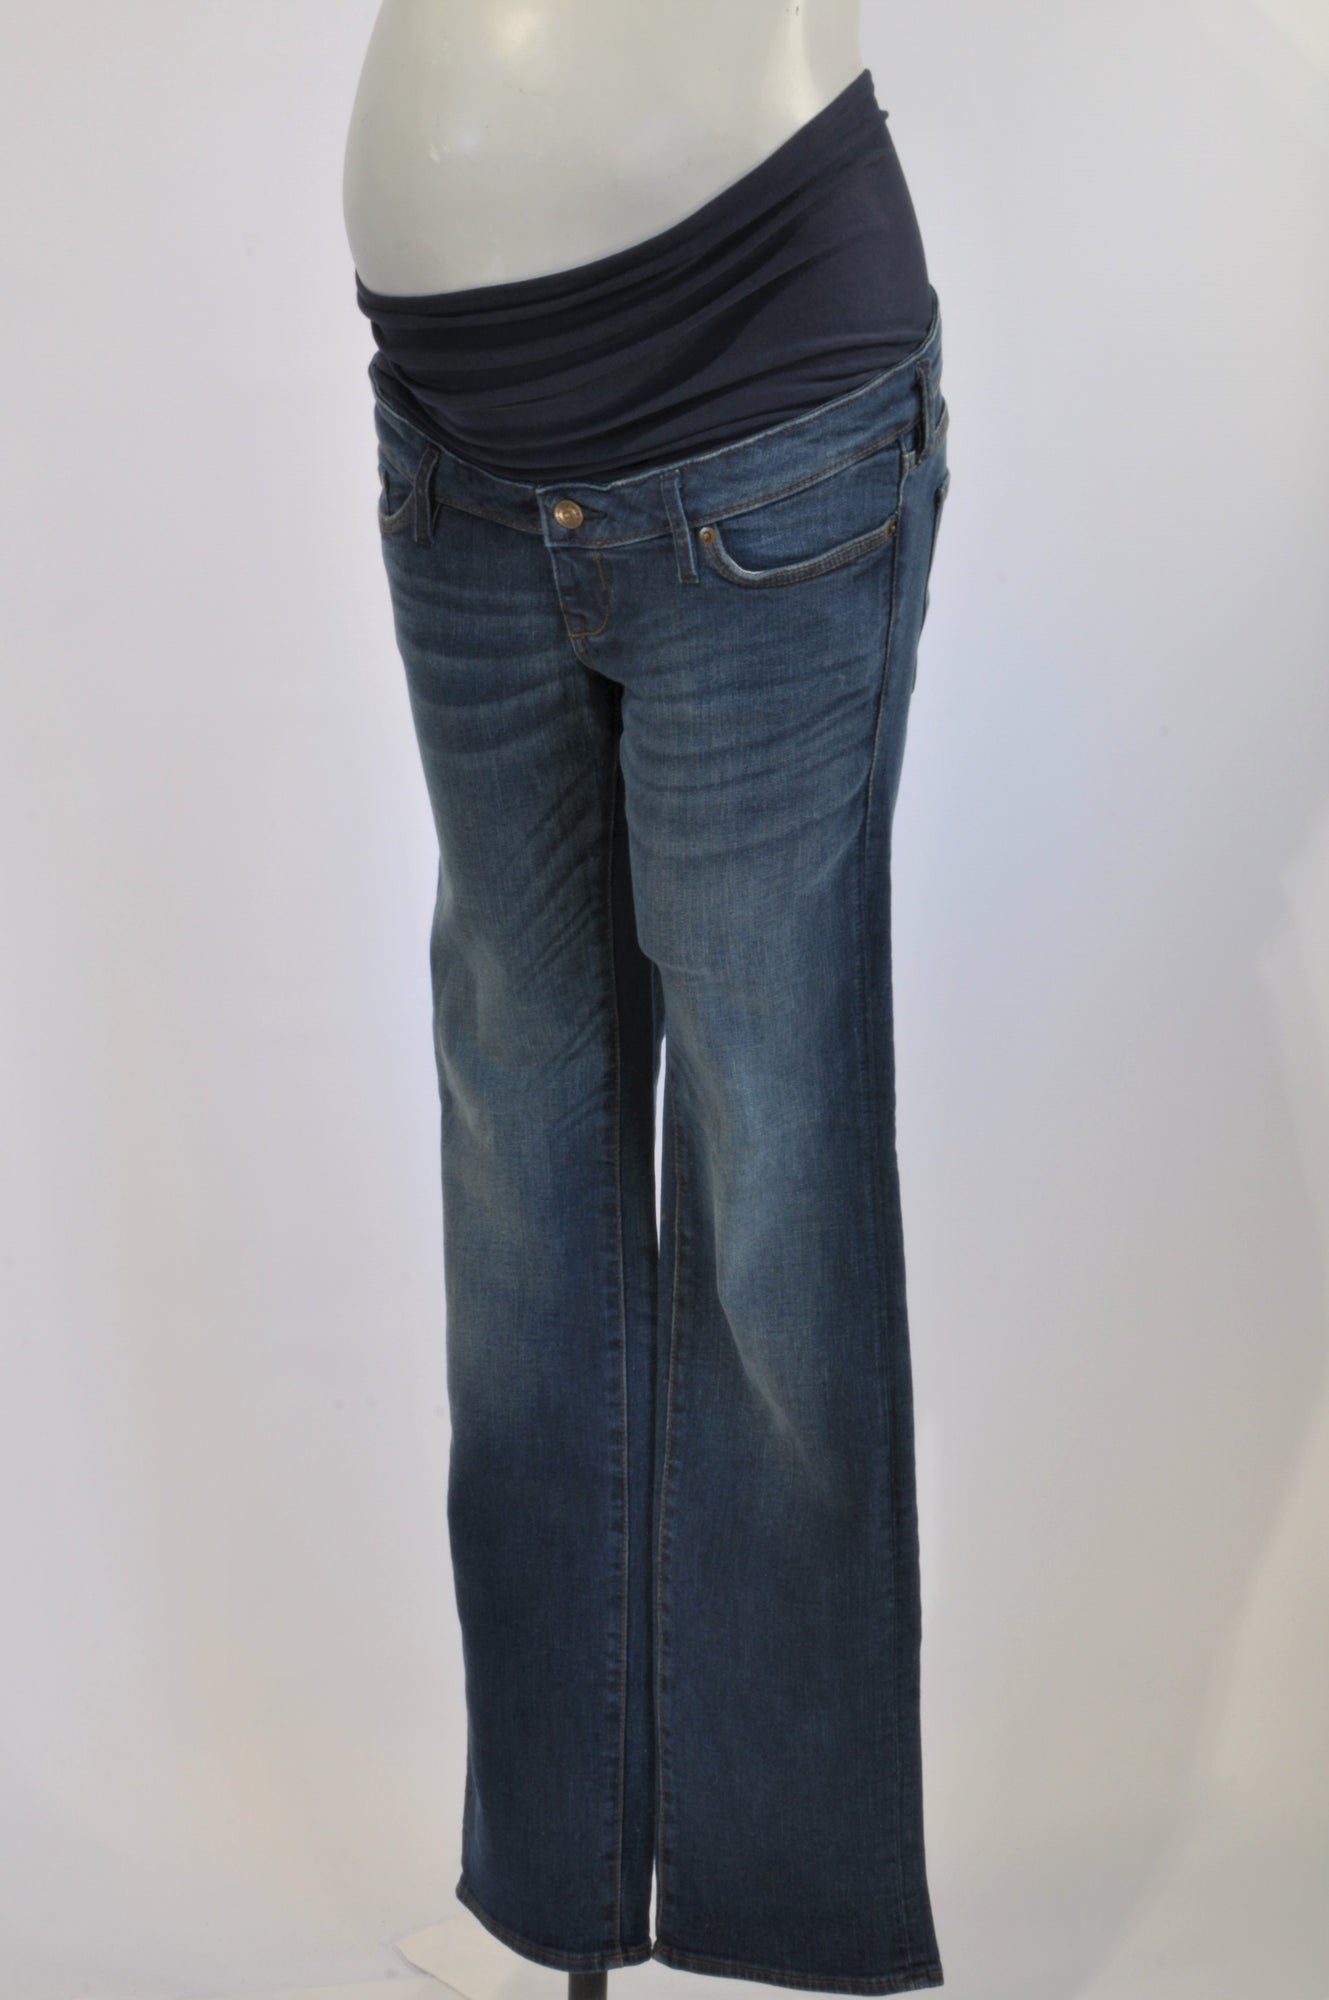 H&M Stone Washed Straight Leg Maternity Jeans Size 10